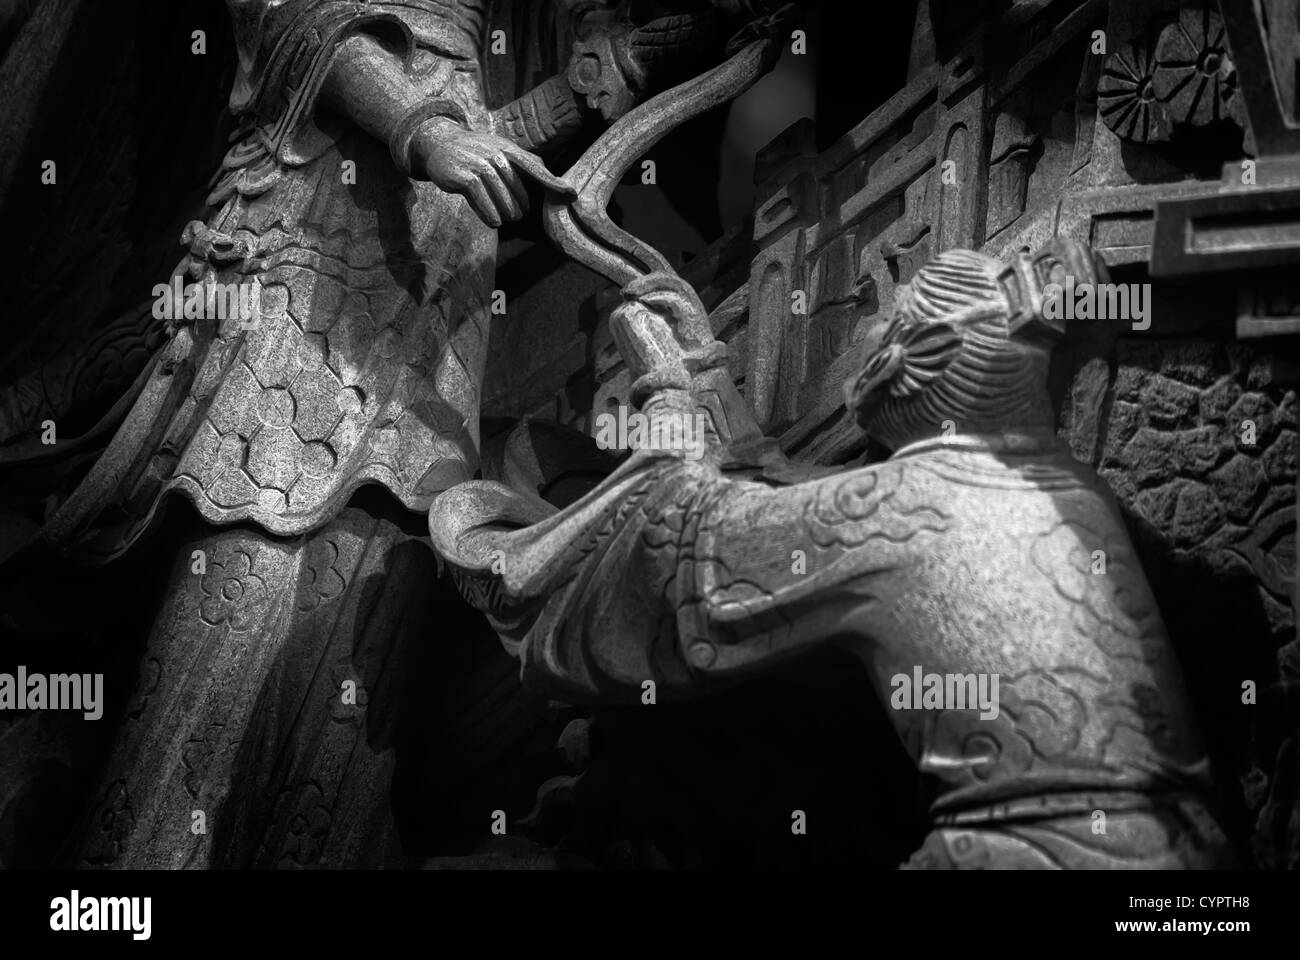 It is a stone carving of Taiwan. Maybe had one long story and fable. - Stock Image